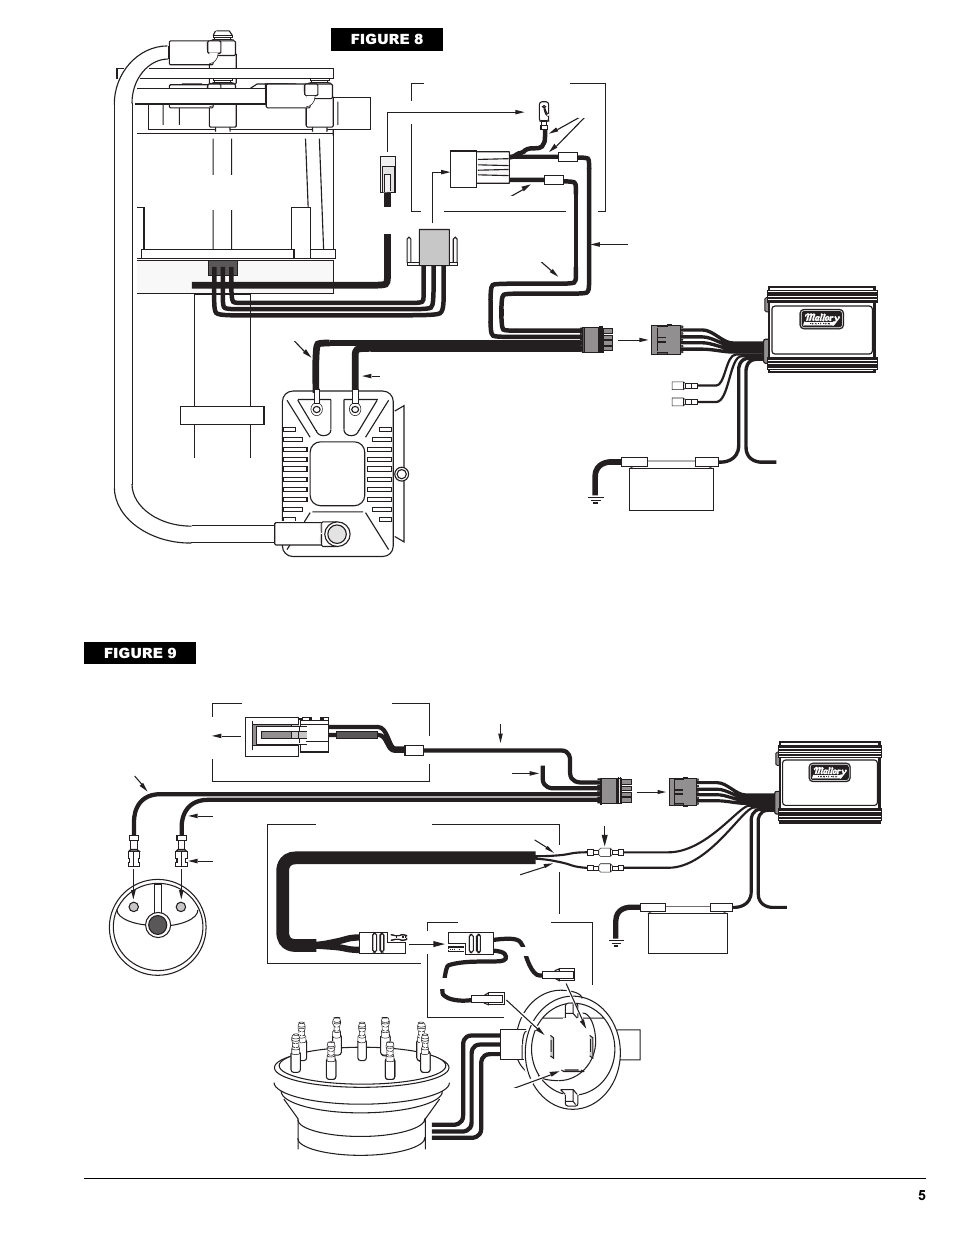 1983 Ford F 150 Solenoid Wiring Diagram also 920034 Wiring Woes furthermore 1979 F100 302 Ignition Wiring Diagram as well 774118 390 Dist Wiring as well QF0n 17366. on ford duraspark ignition wiring diagram